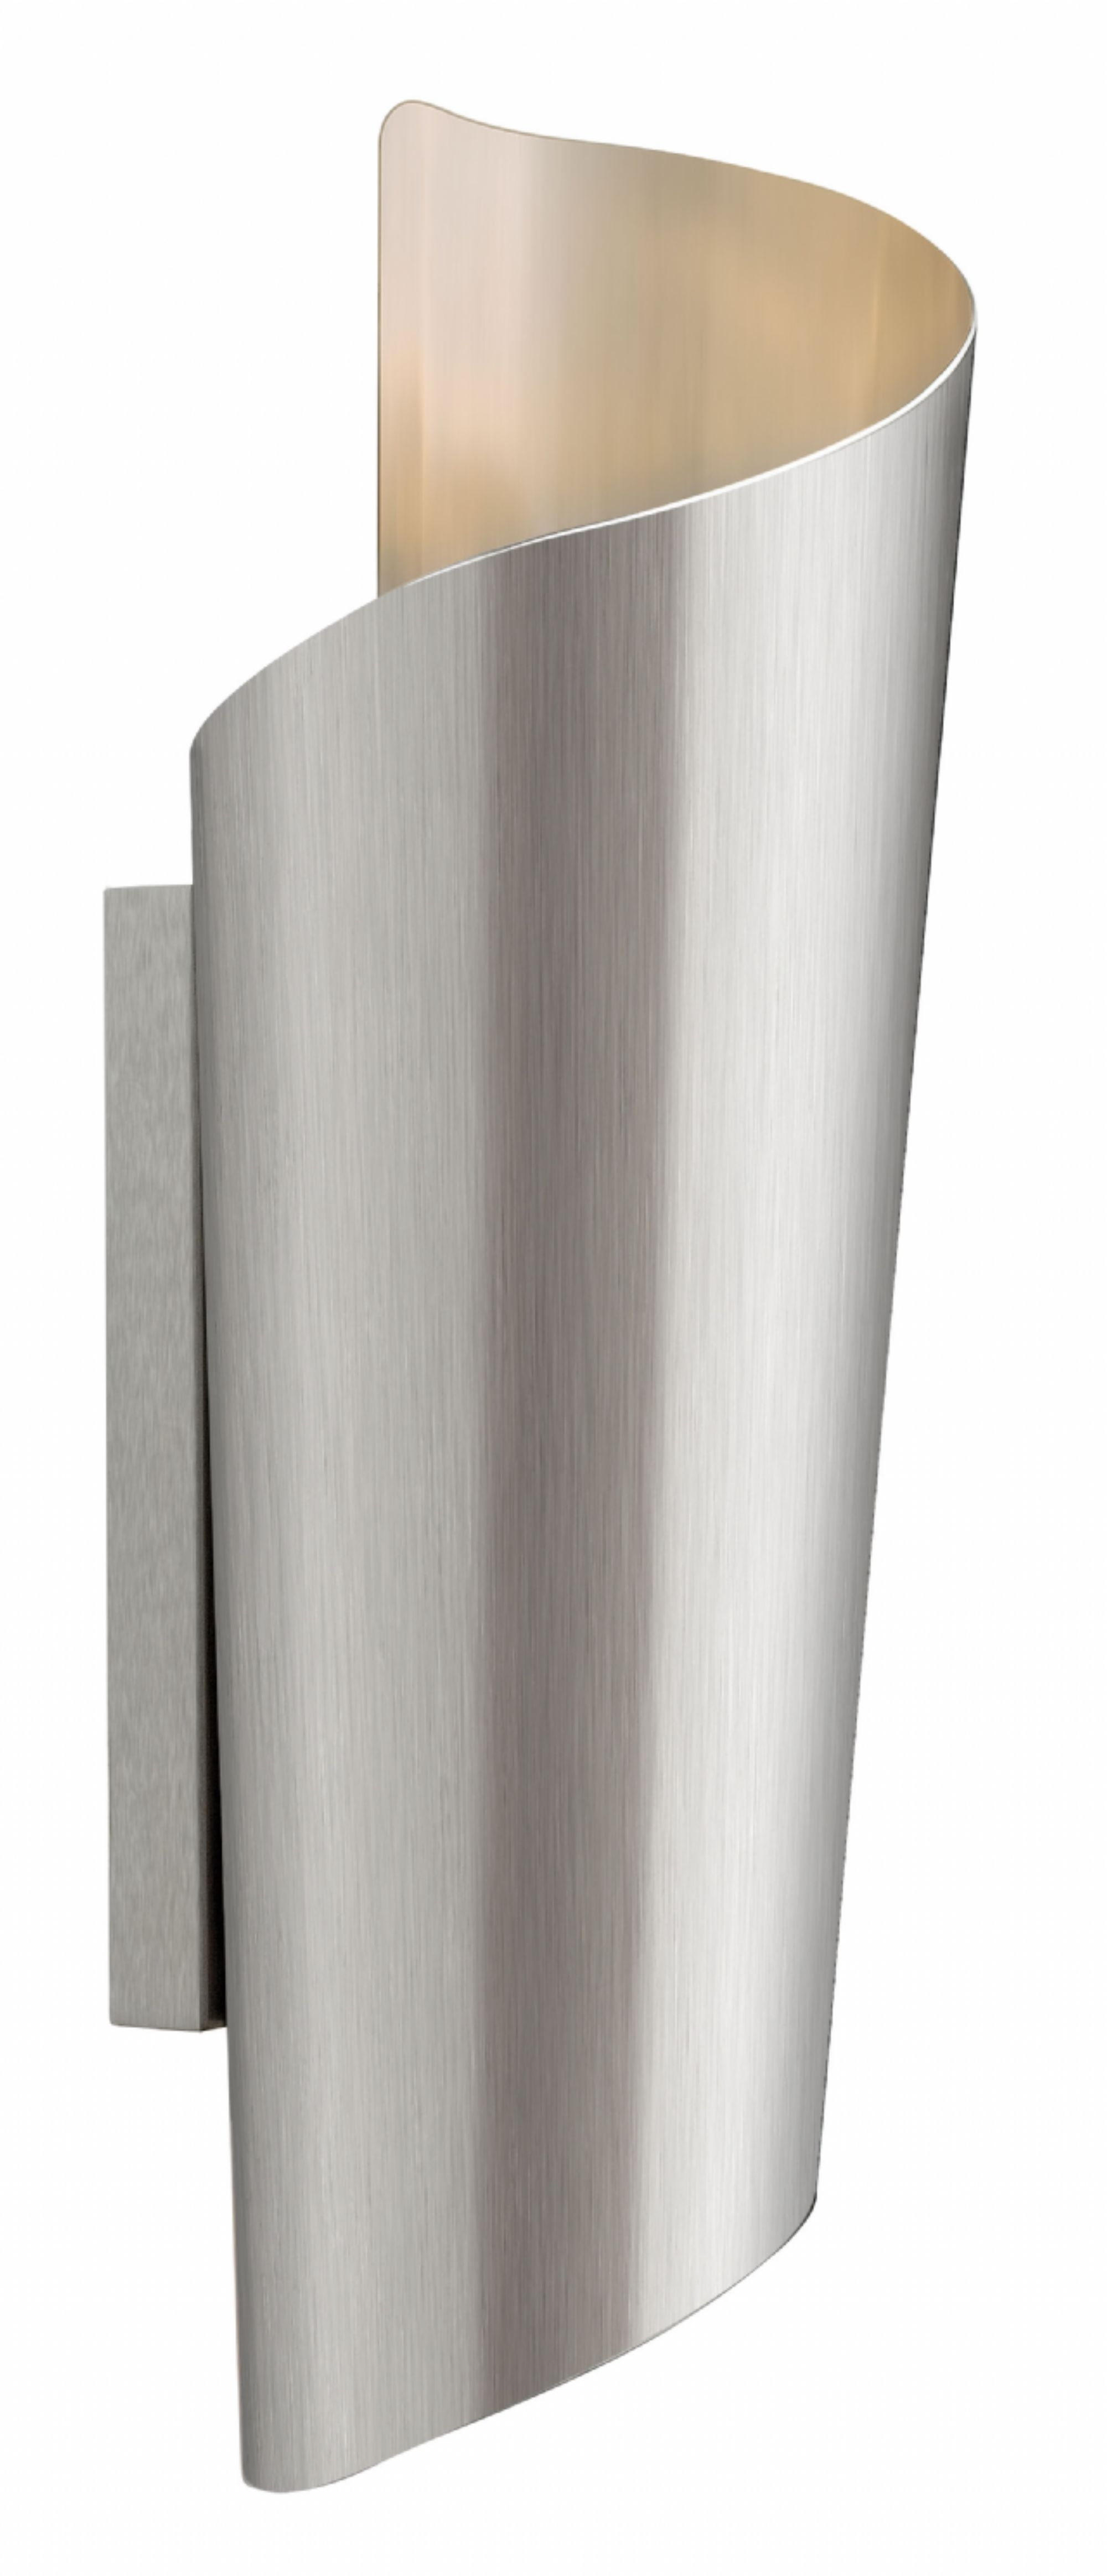 Stainless Steel Surf > Exterior Wall Mount With Regard To Latest Modern Latern Hinkley Lighting (View 17 of 20)